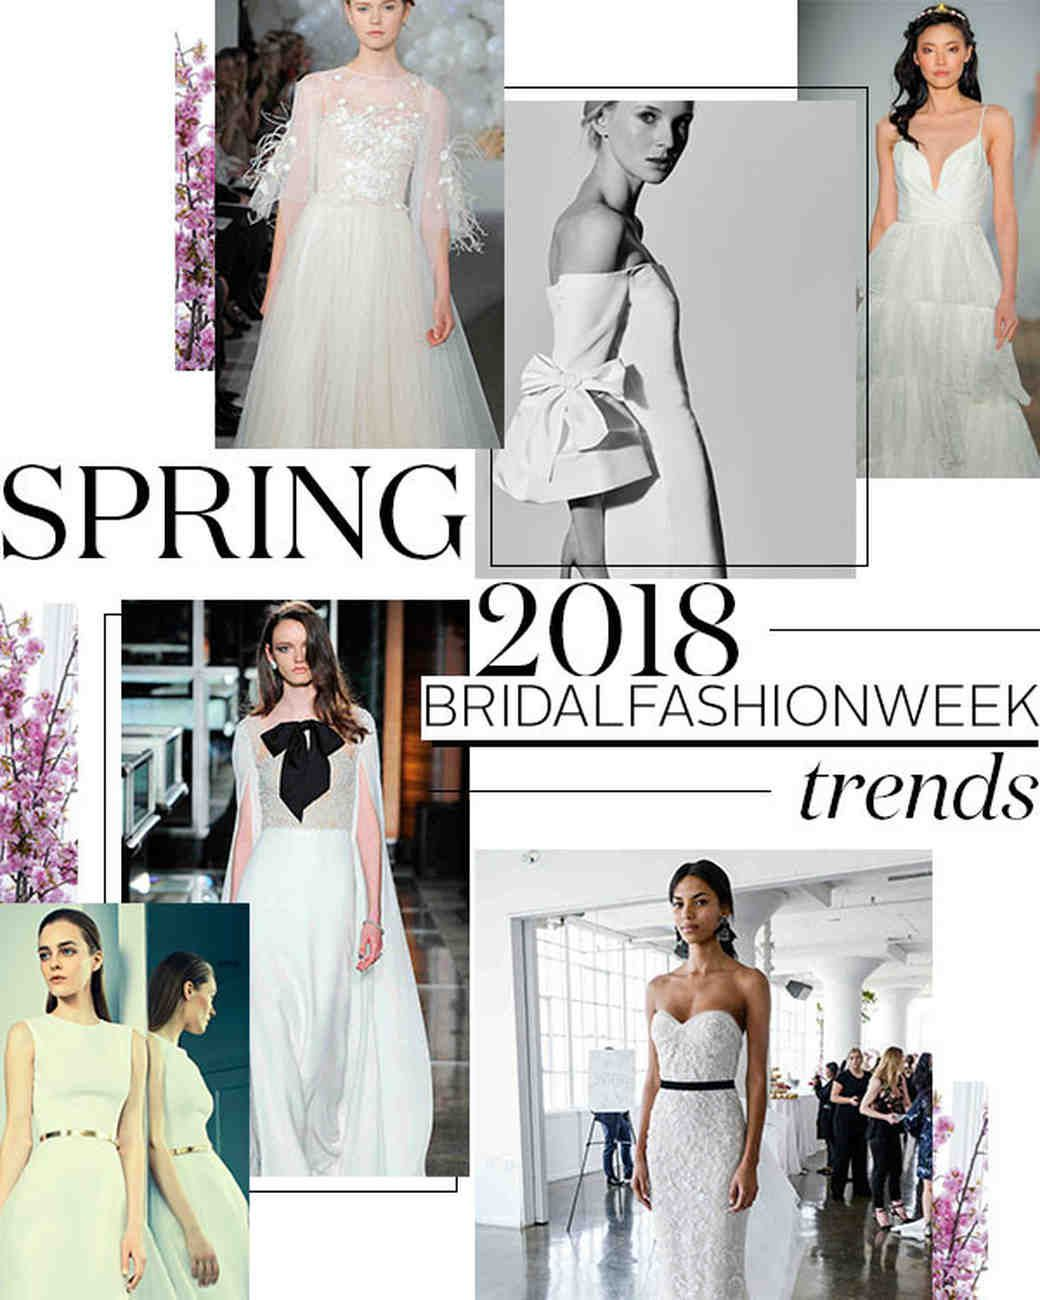 Spring 2018 fashion trends wedding guests